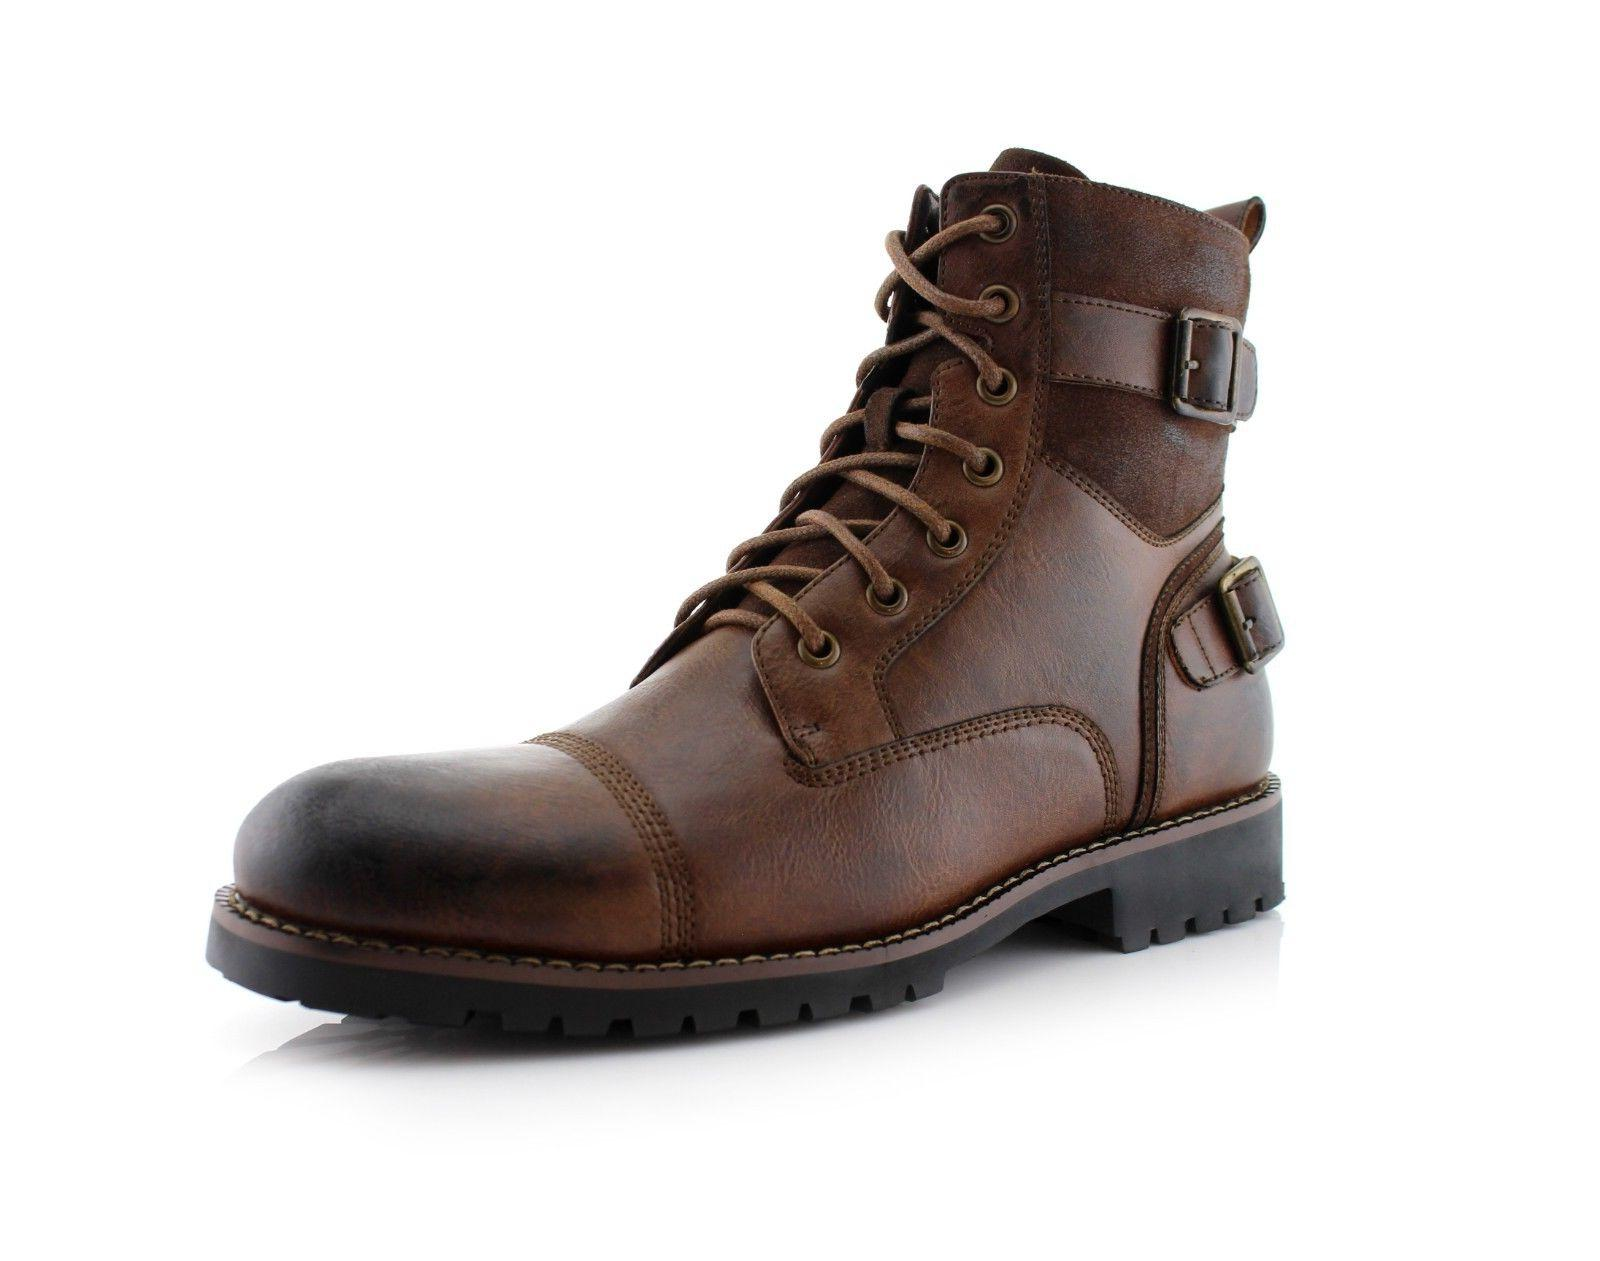 Men's Motorcycle Boots Riding